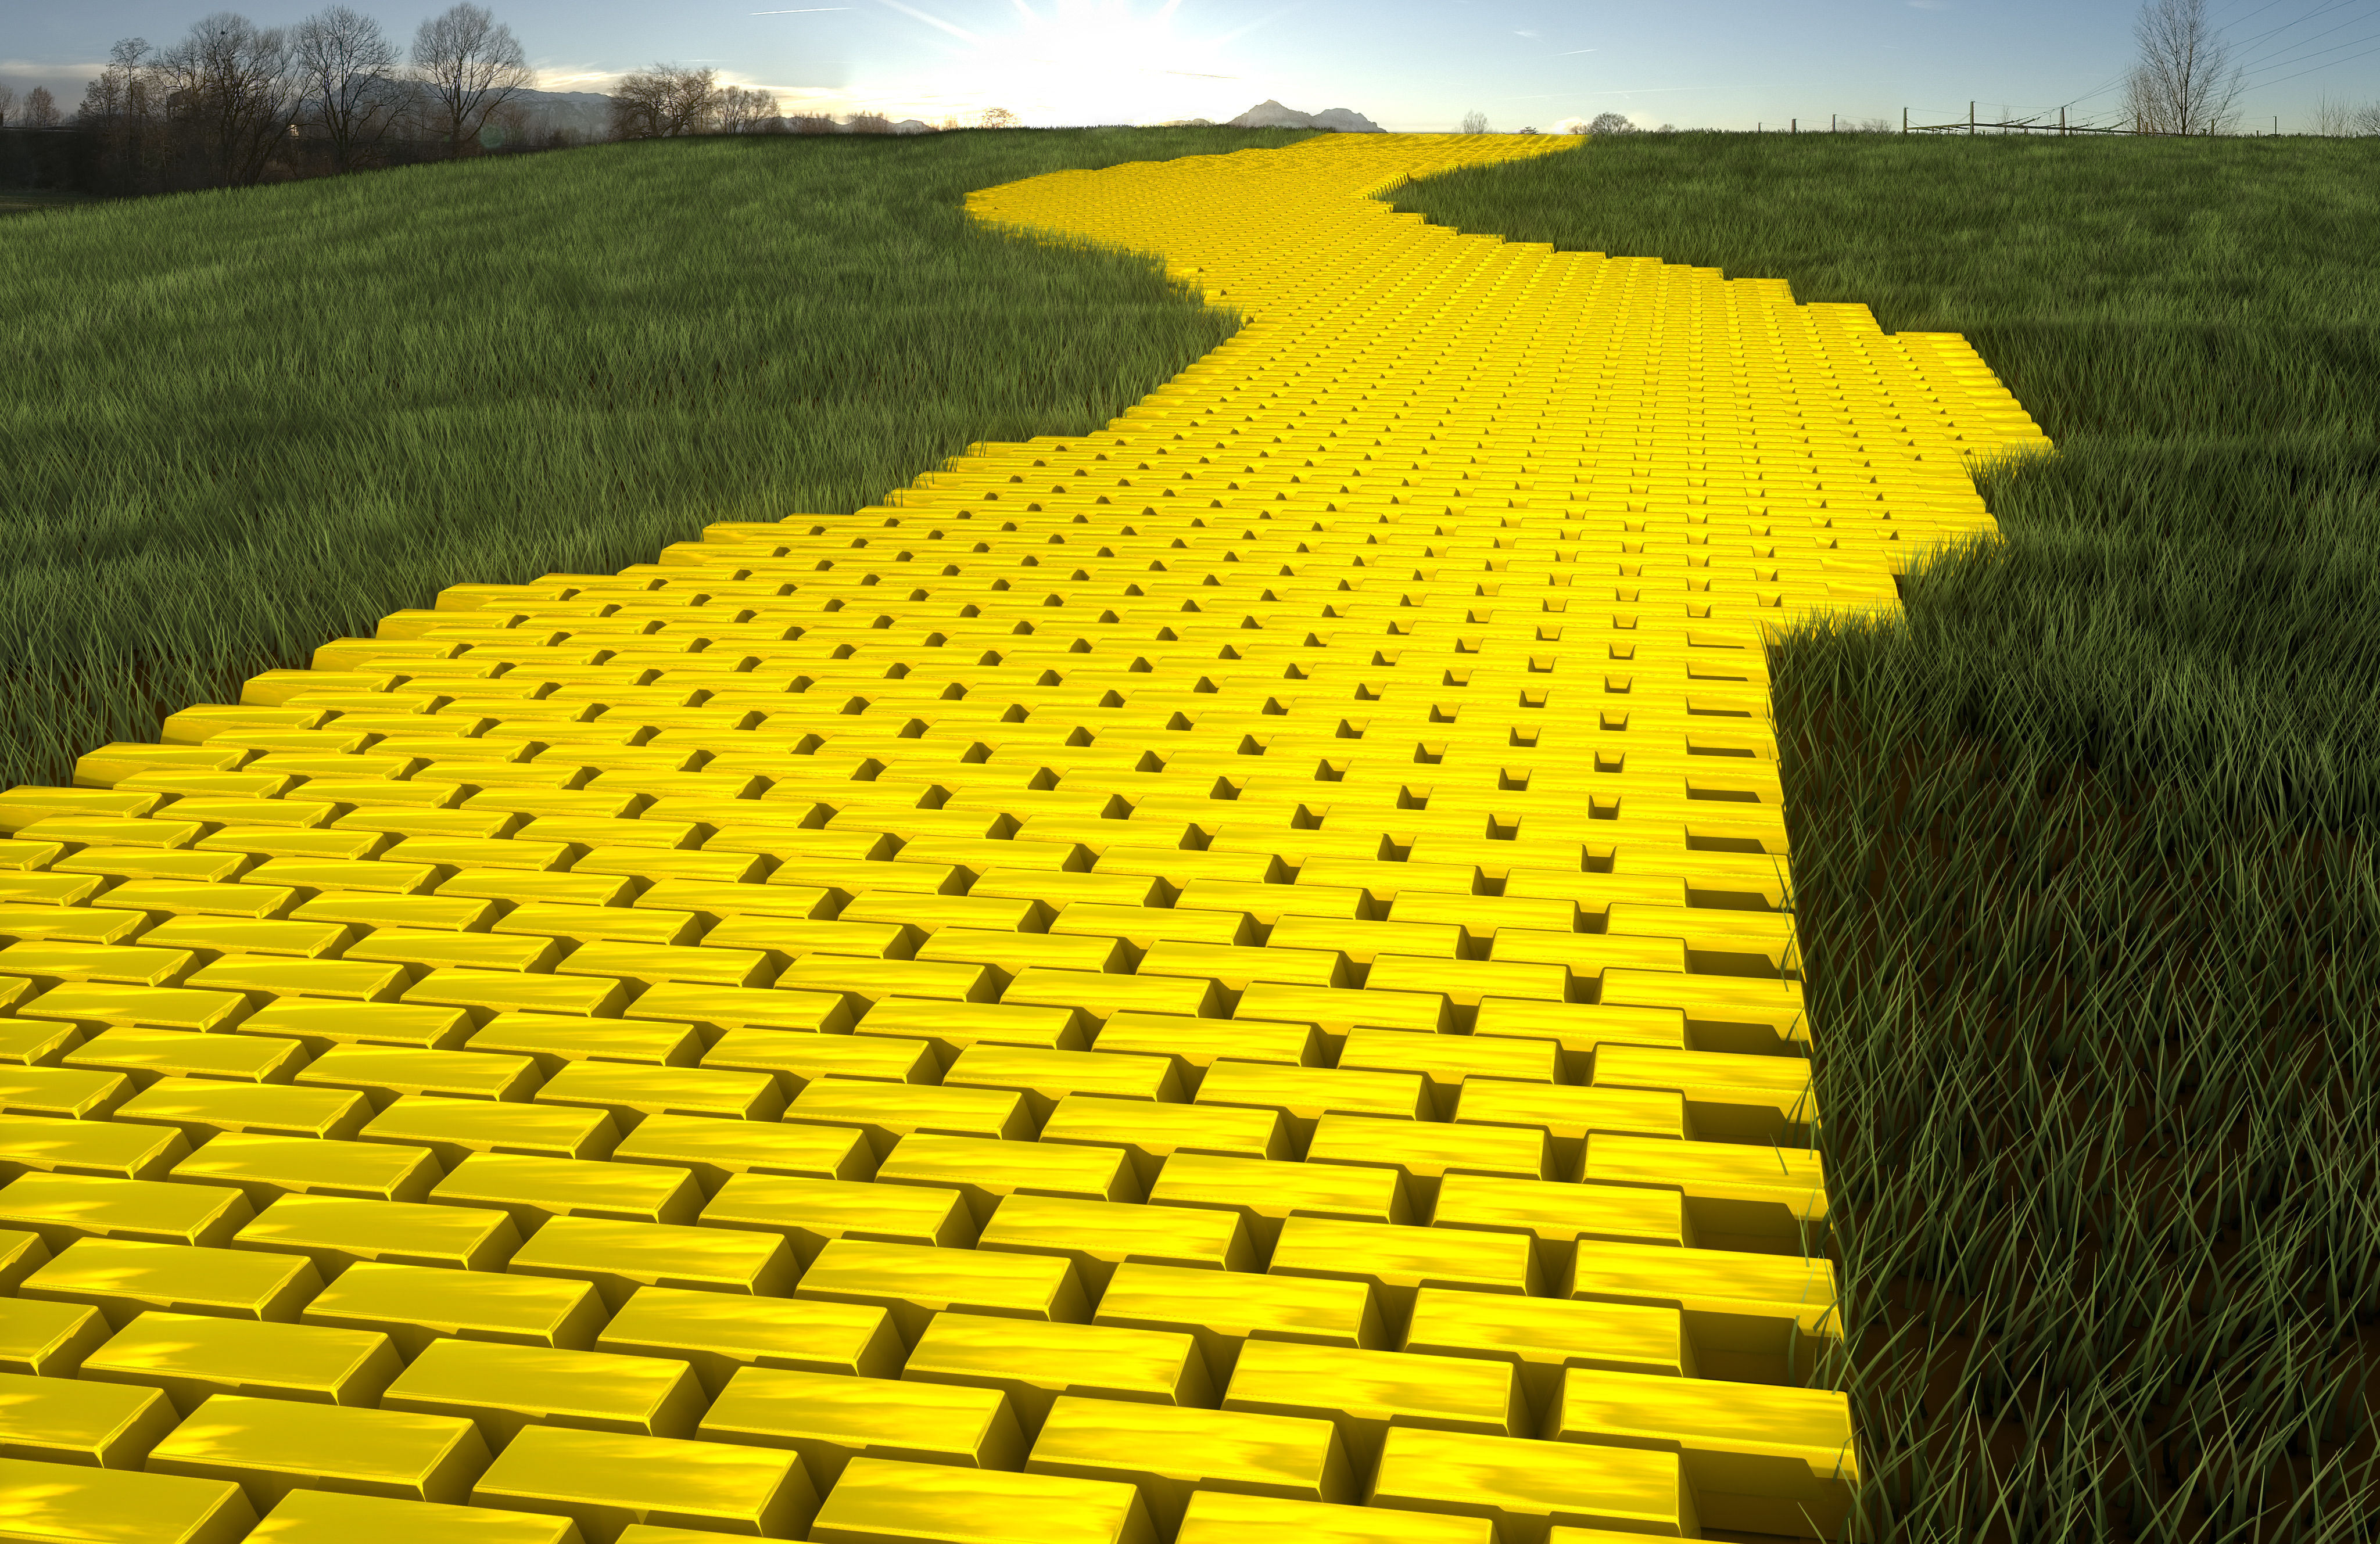 Yellow brick road clipart